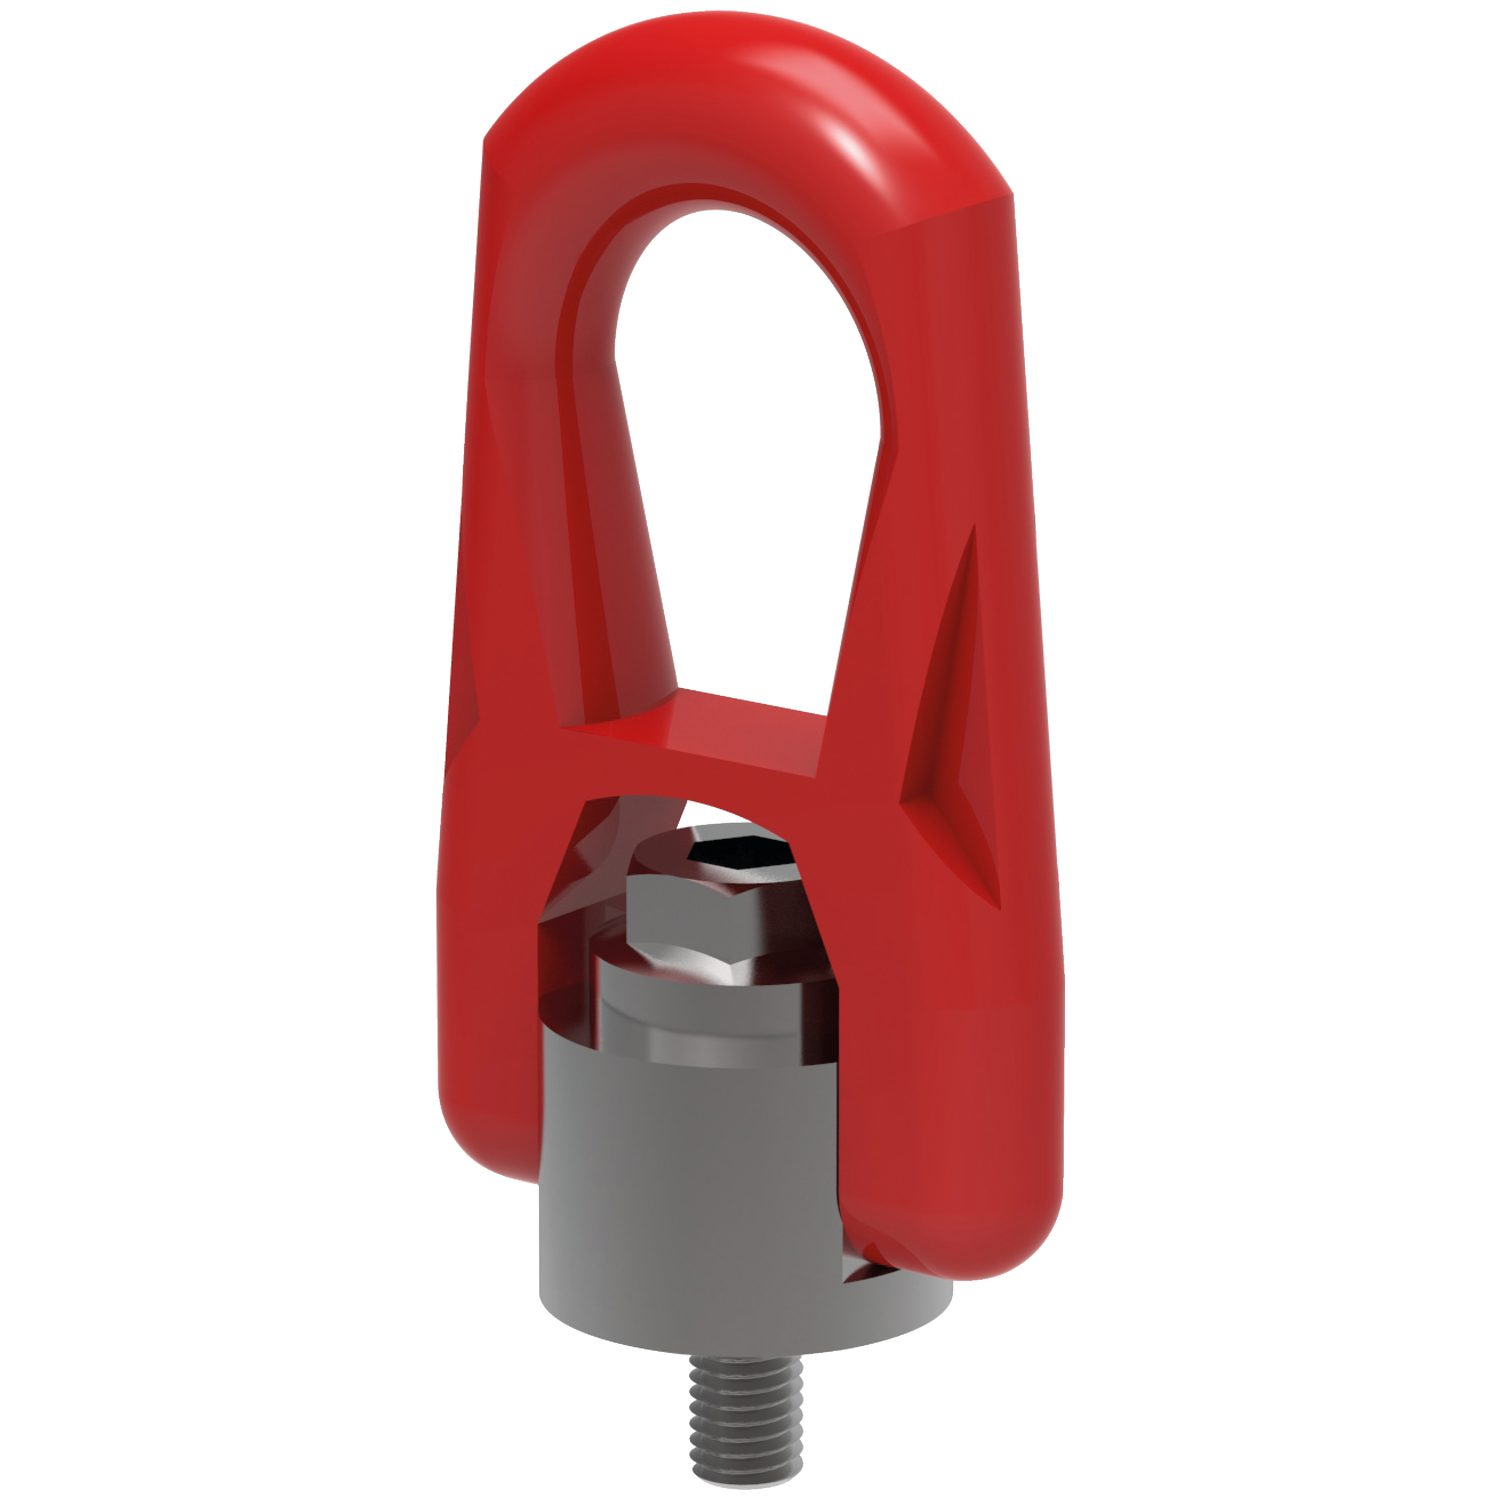 Double Swivel Rings Male Double swivel lifting rings M4 to M30 - loads up to 6.3 tons per ring.